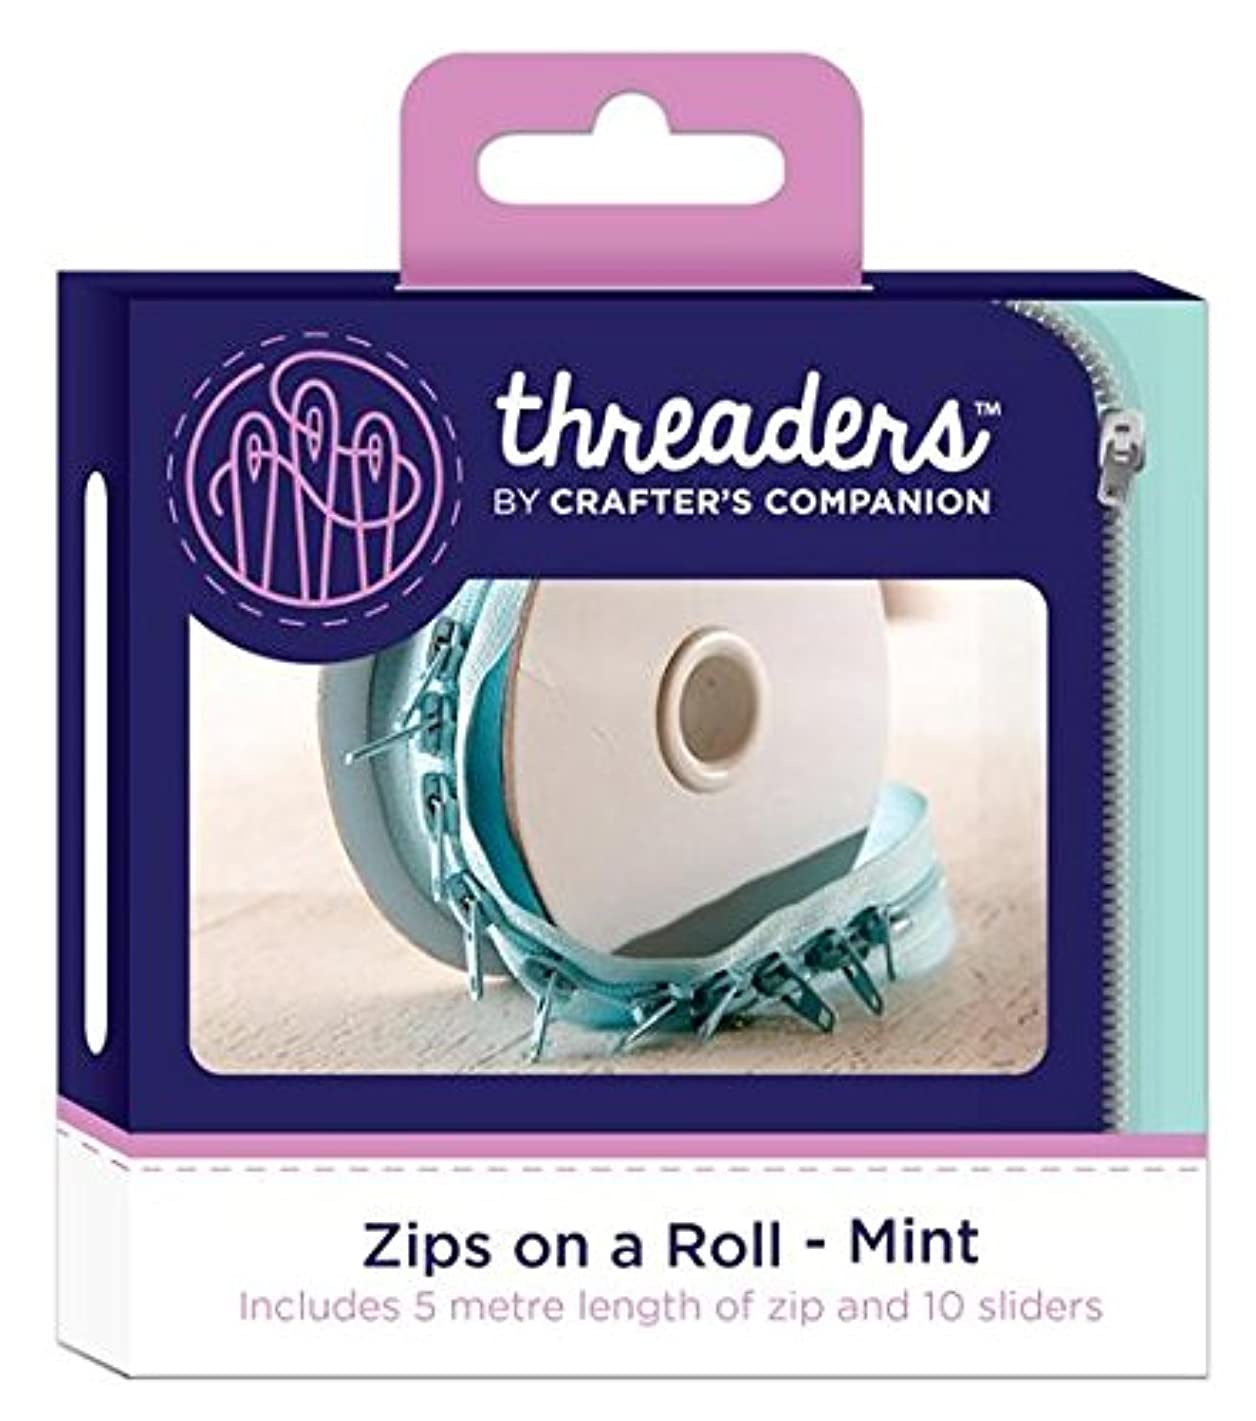 Crafter's Companion CC Threaders Zips On A Roll Mint